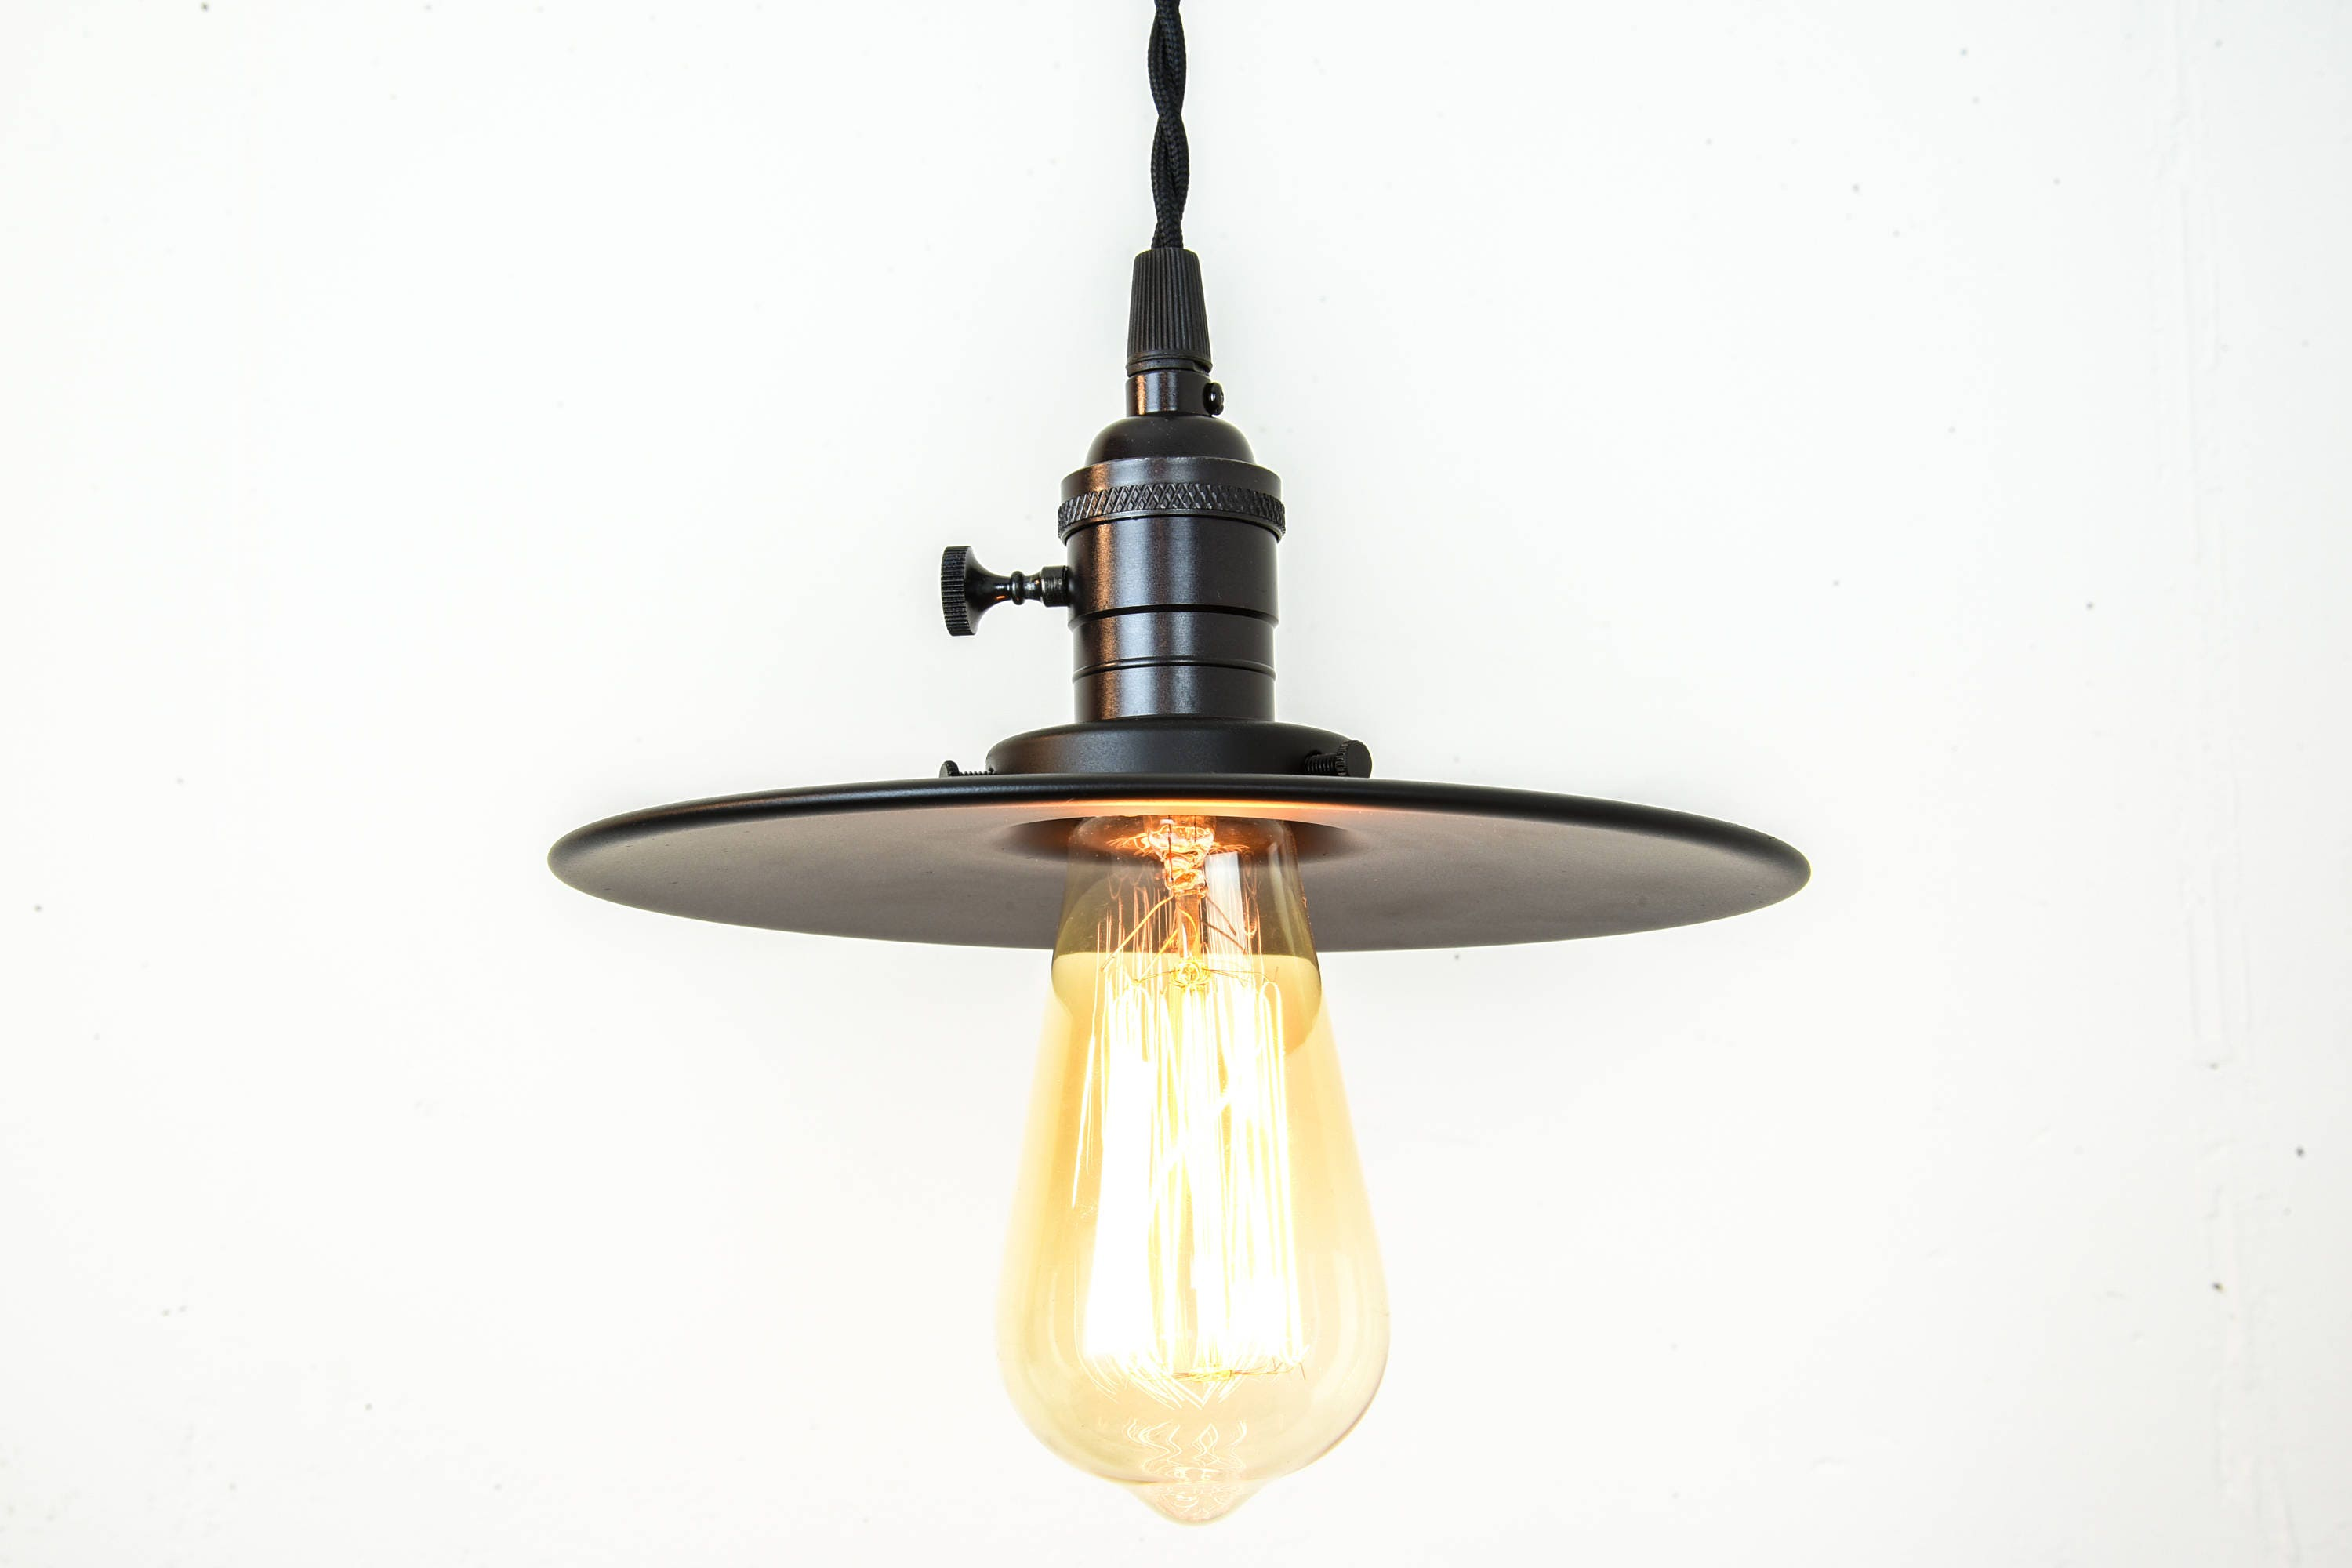 cheap rustic lighting. Industrial Lighting - Black Pendant Lights Farmhouse Light Flat Shade Matte Rustic Plug In Edison Bulb Cheap N